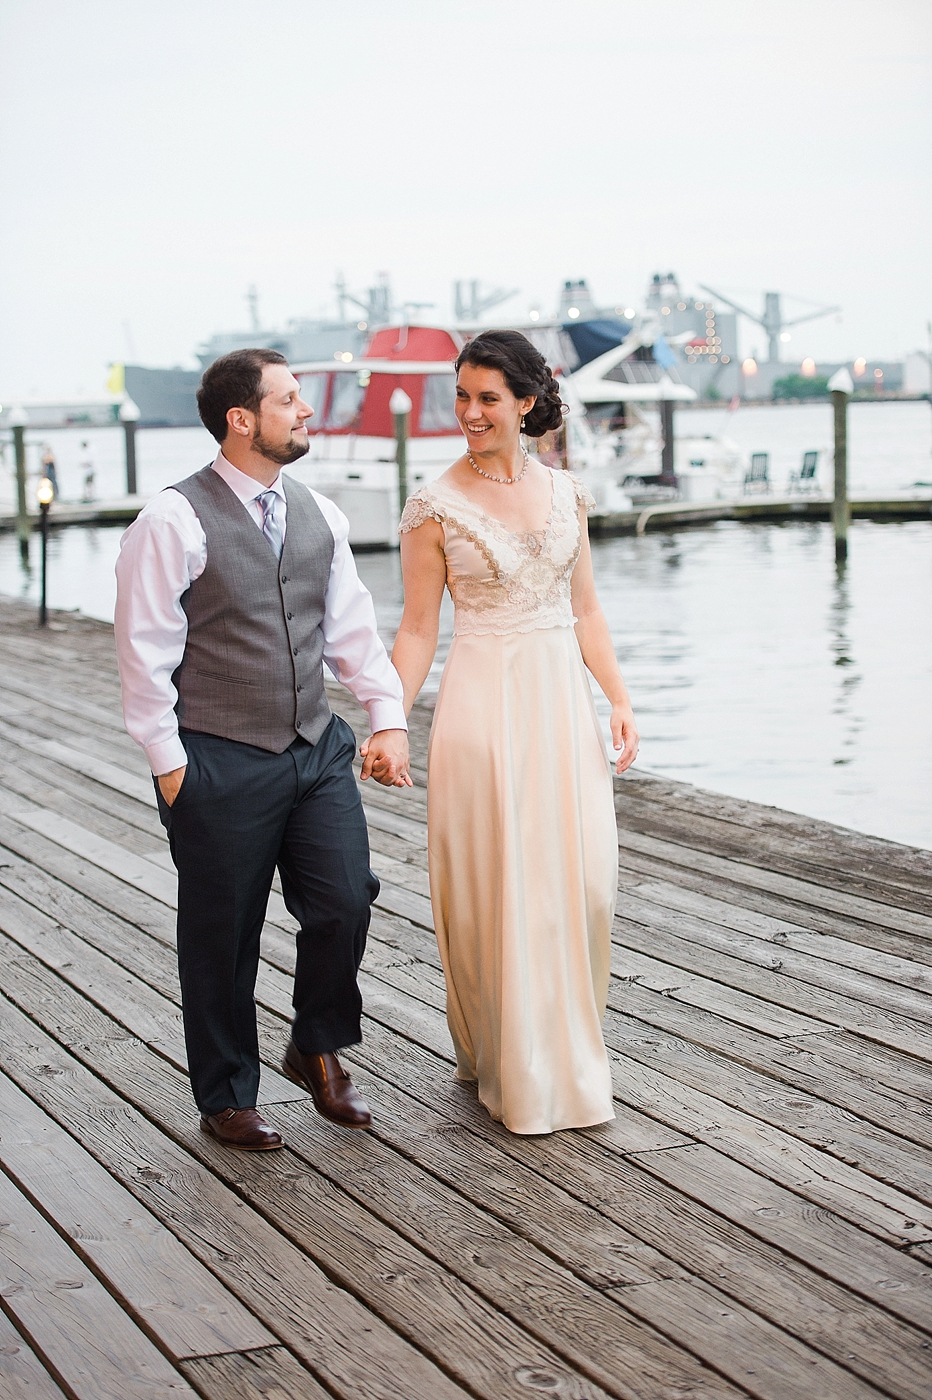 Inn at hendersons wharf wedding